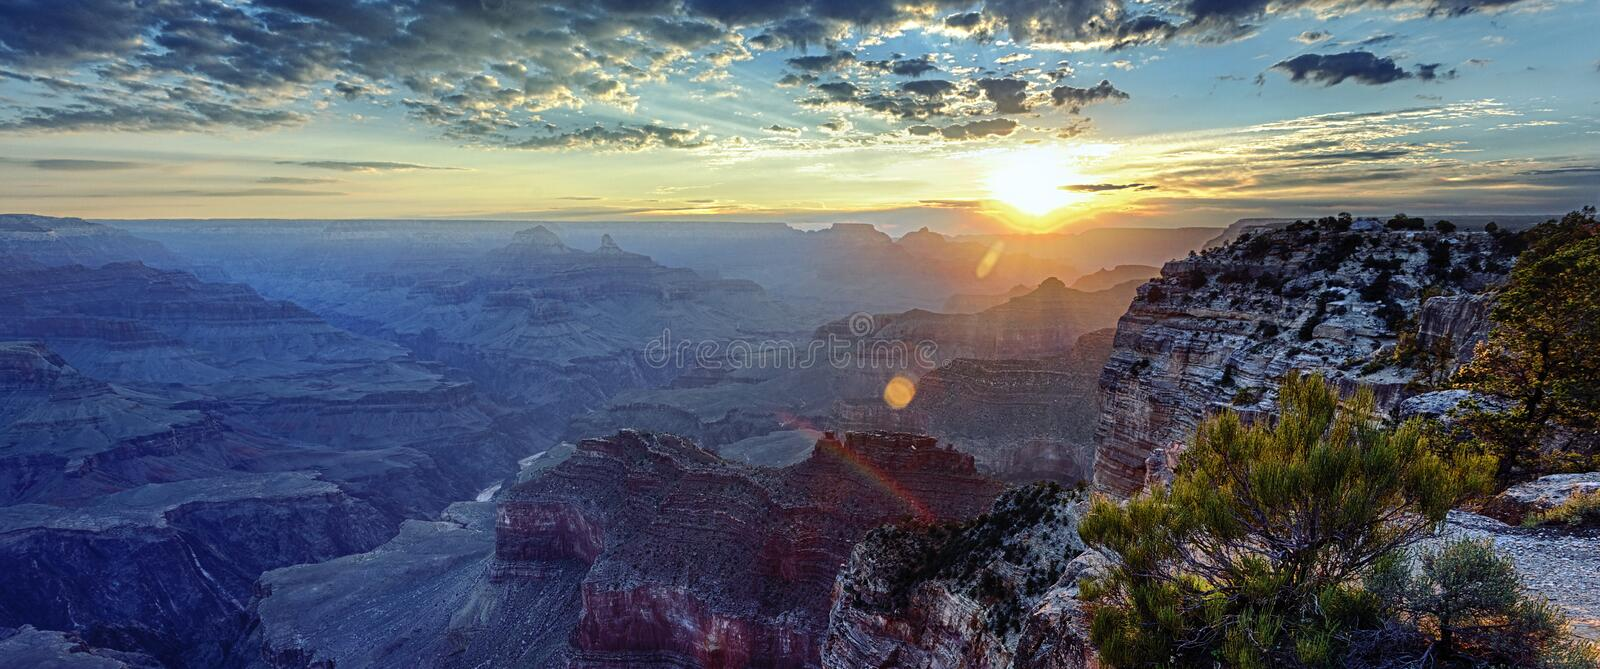 Panoramic view of Grand Canyon at sunrise royalty free stock image